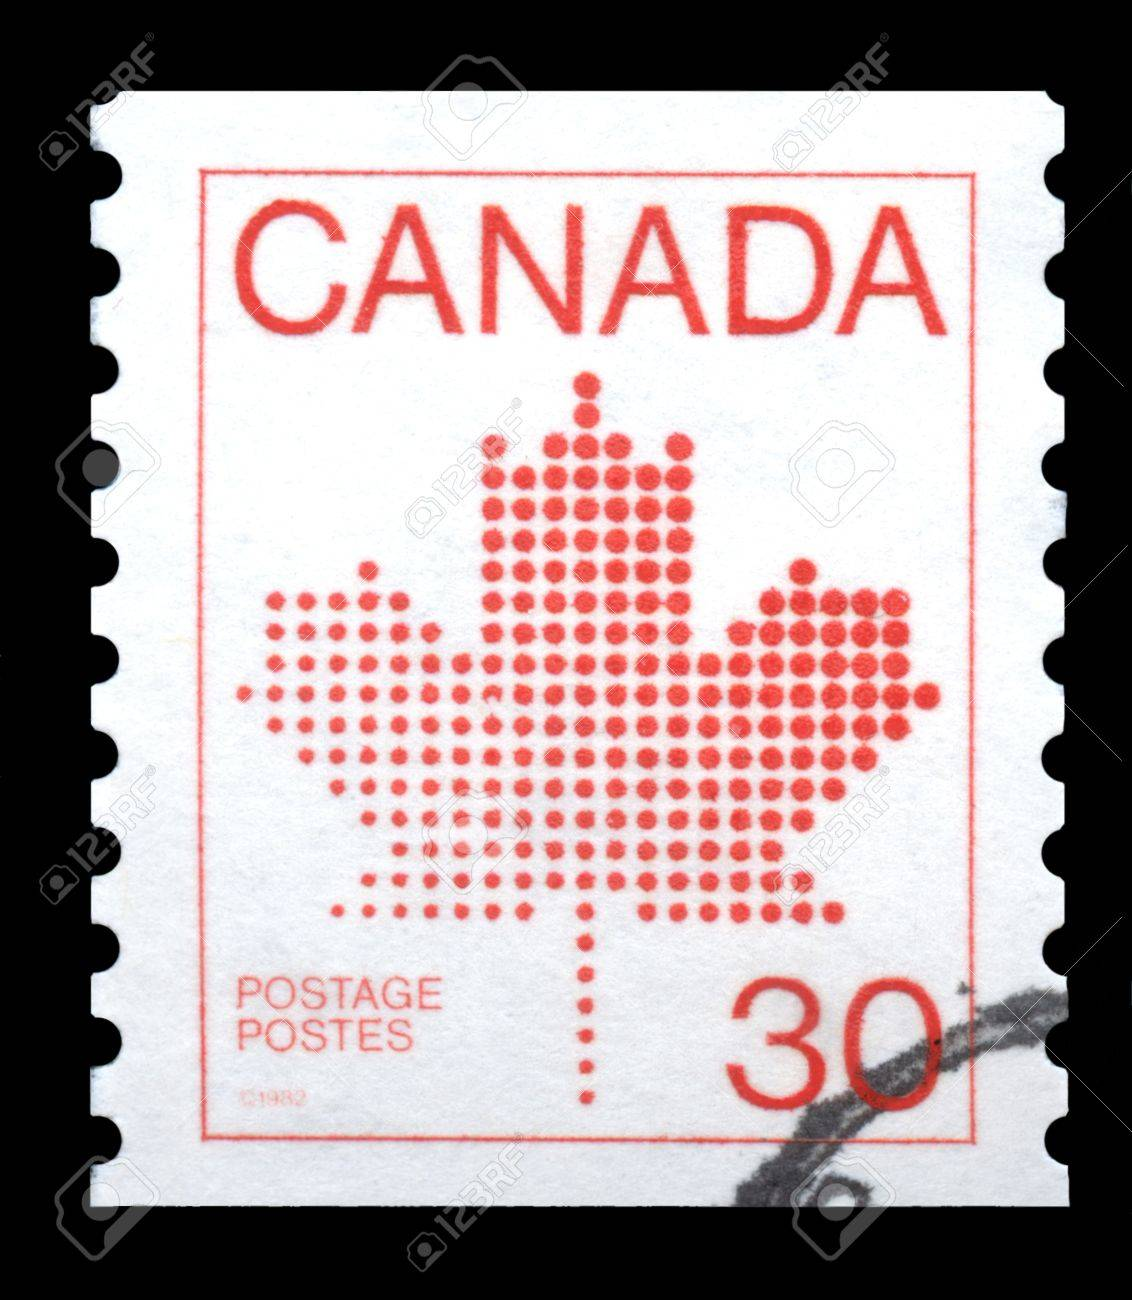 Canada postage stamp showing the red maple leaf, the symbol of Canada Stock Photo - 12361328